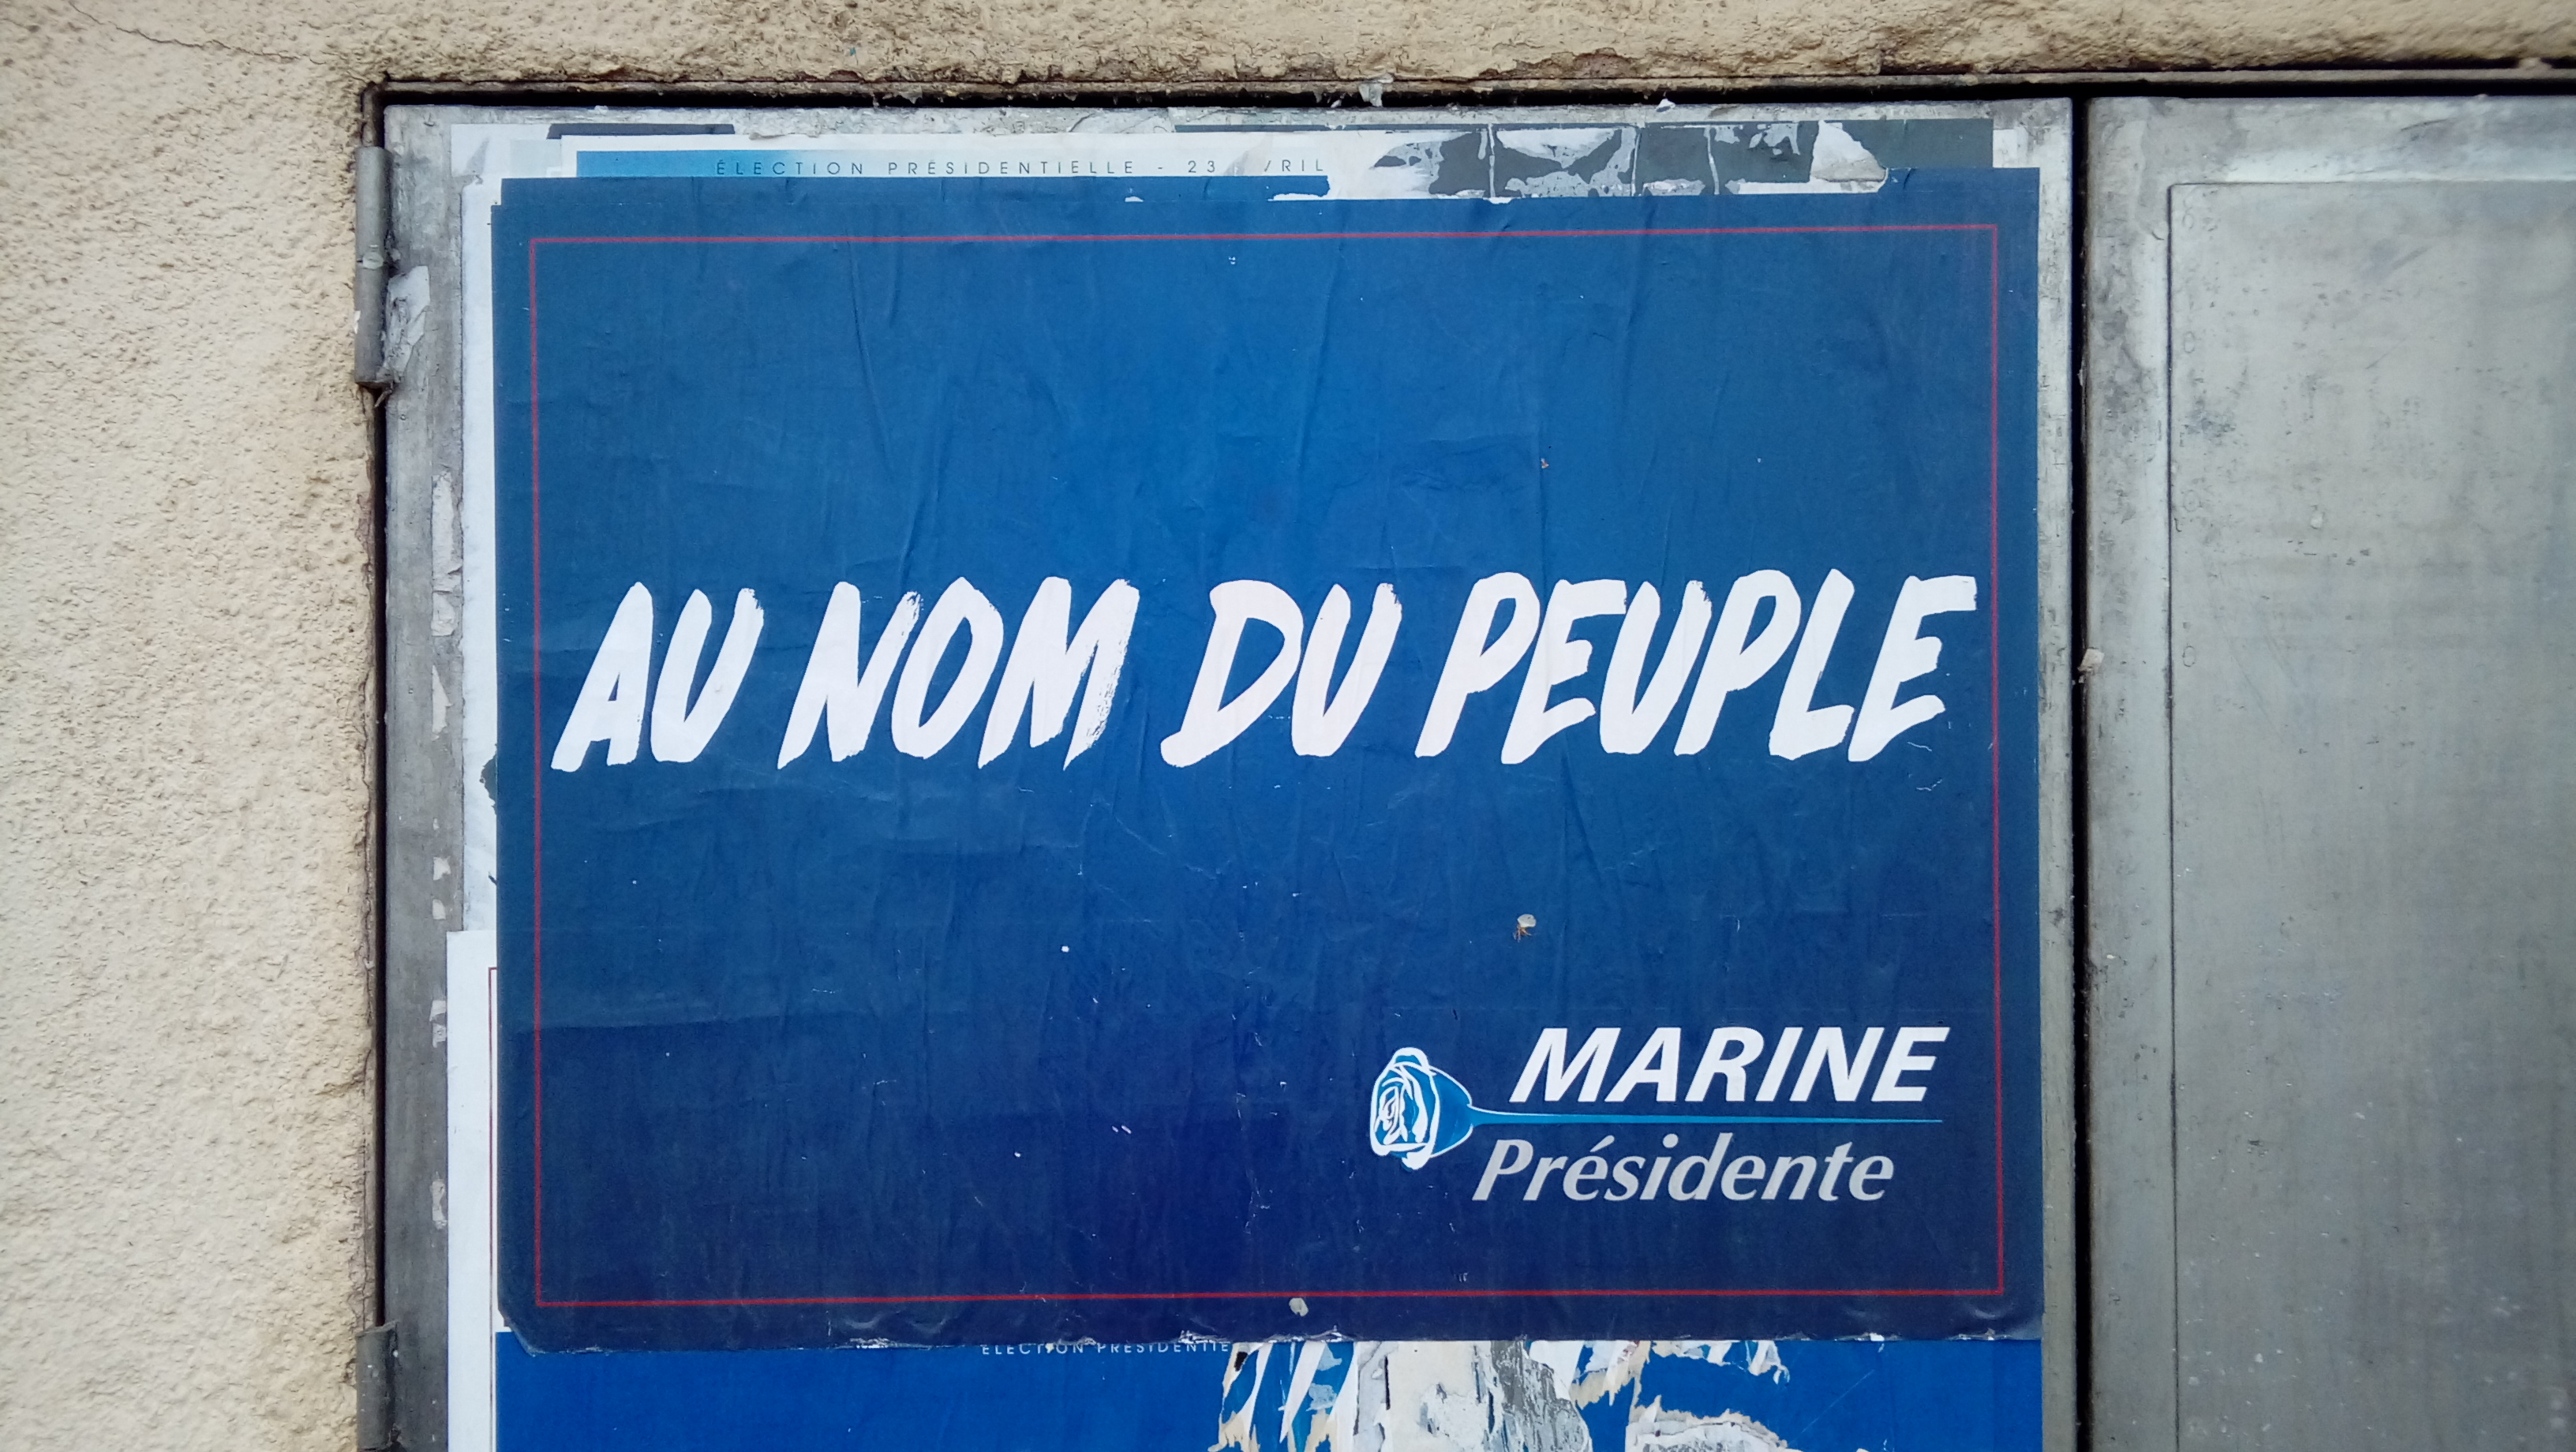 French Elections – Poster Wars